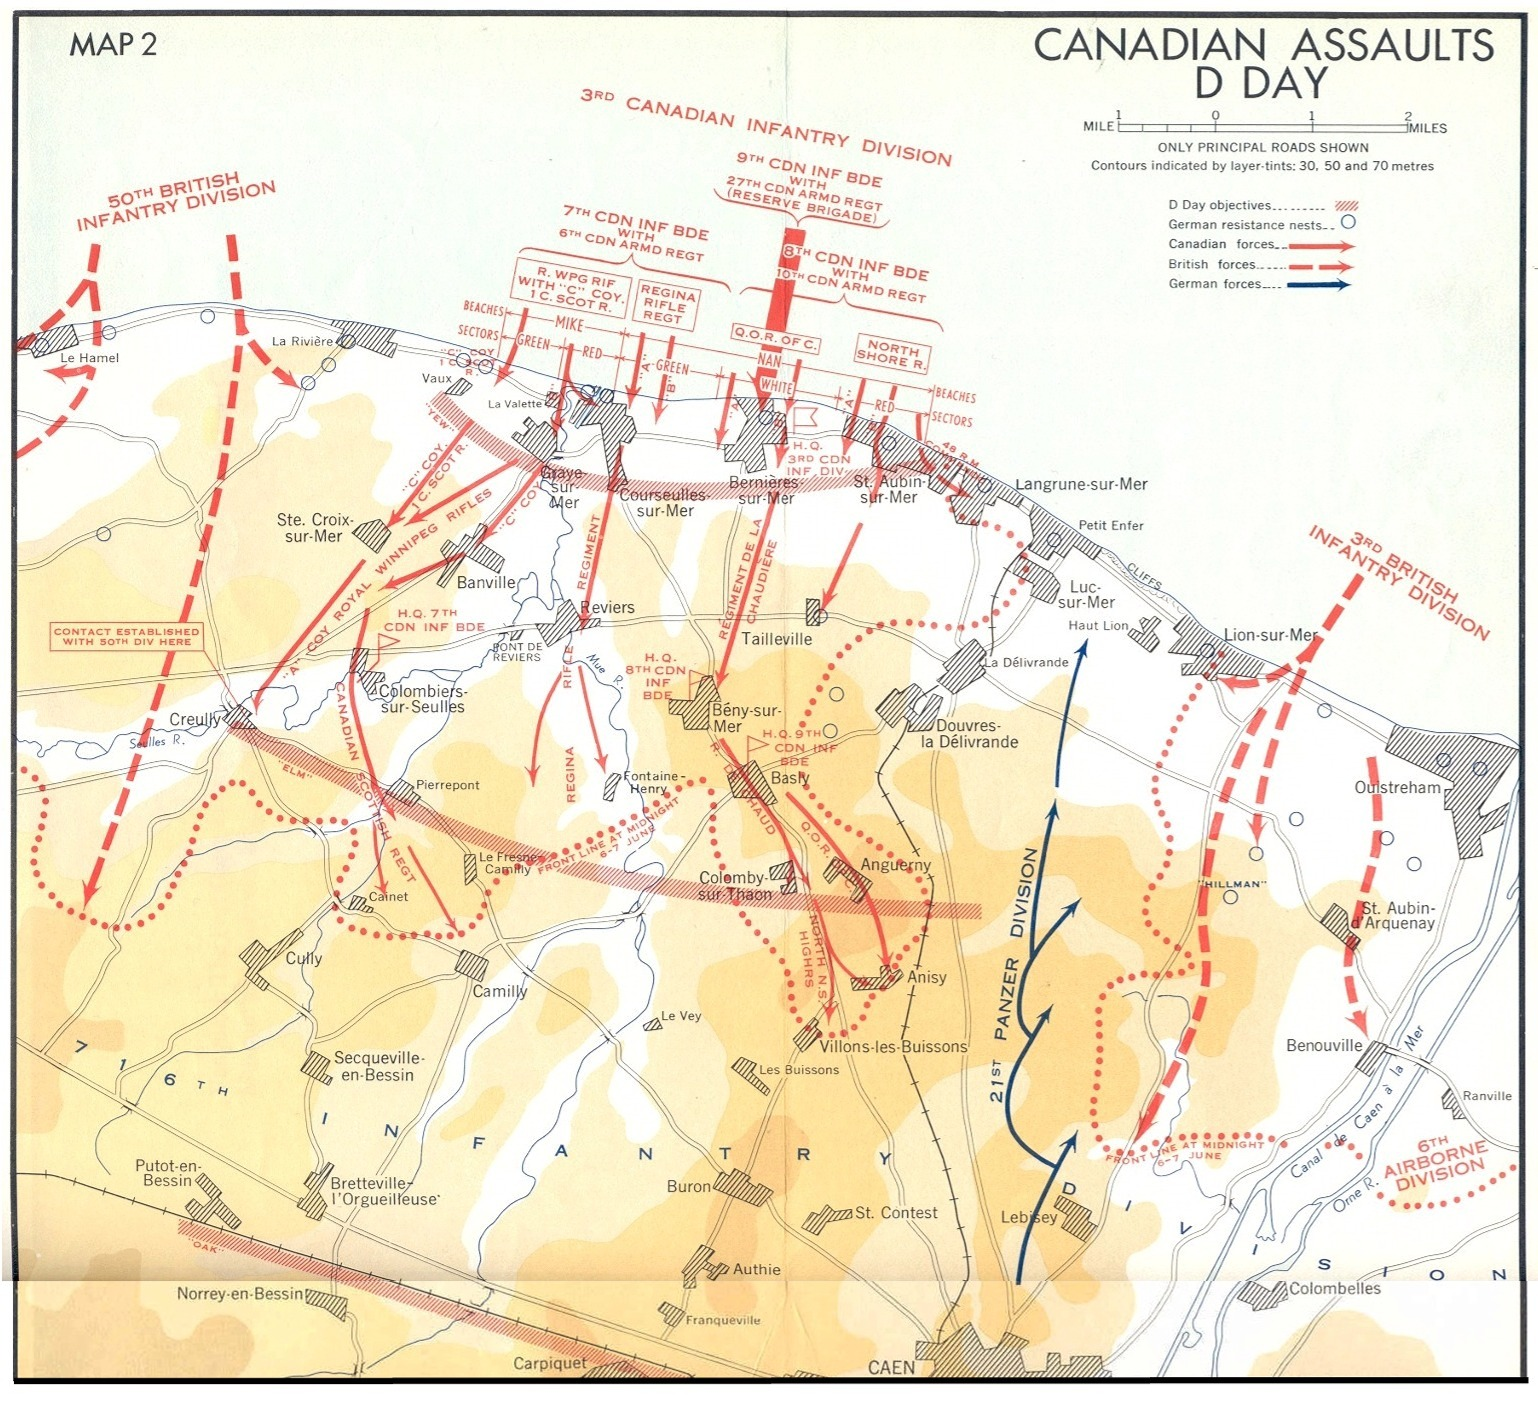 Canadian Assaults on D Day; note direction of 9th Inf. Dif. reserve and corresponding location of nan white beach and